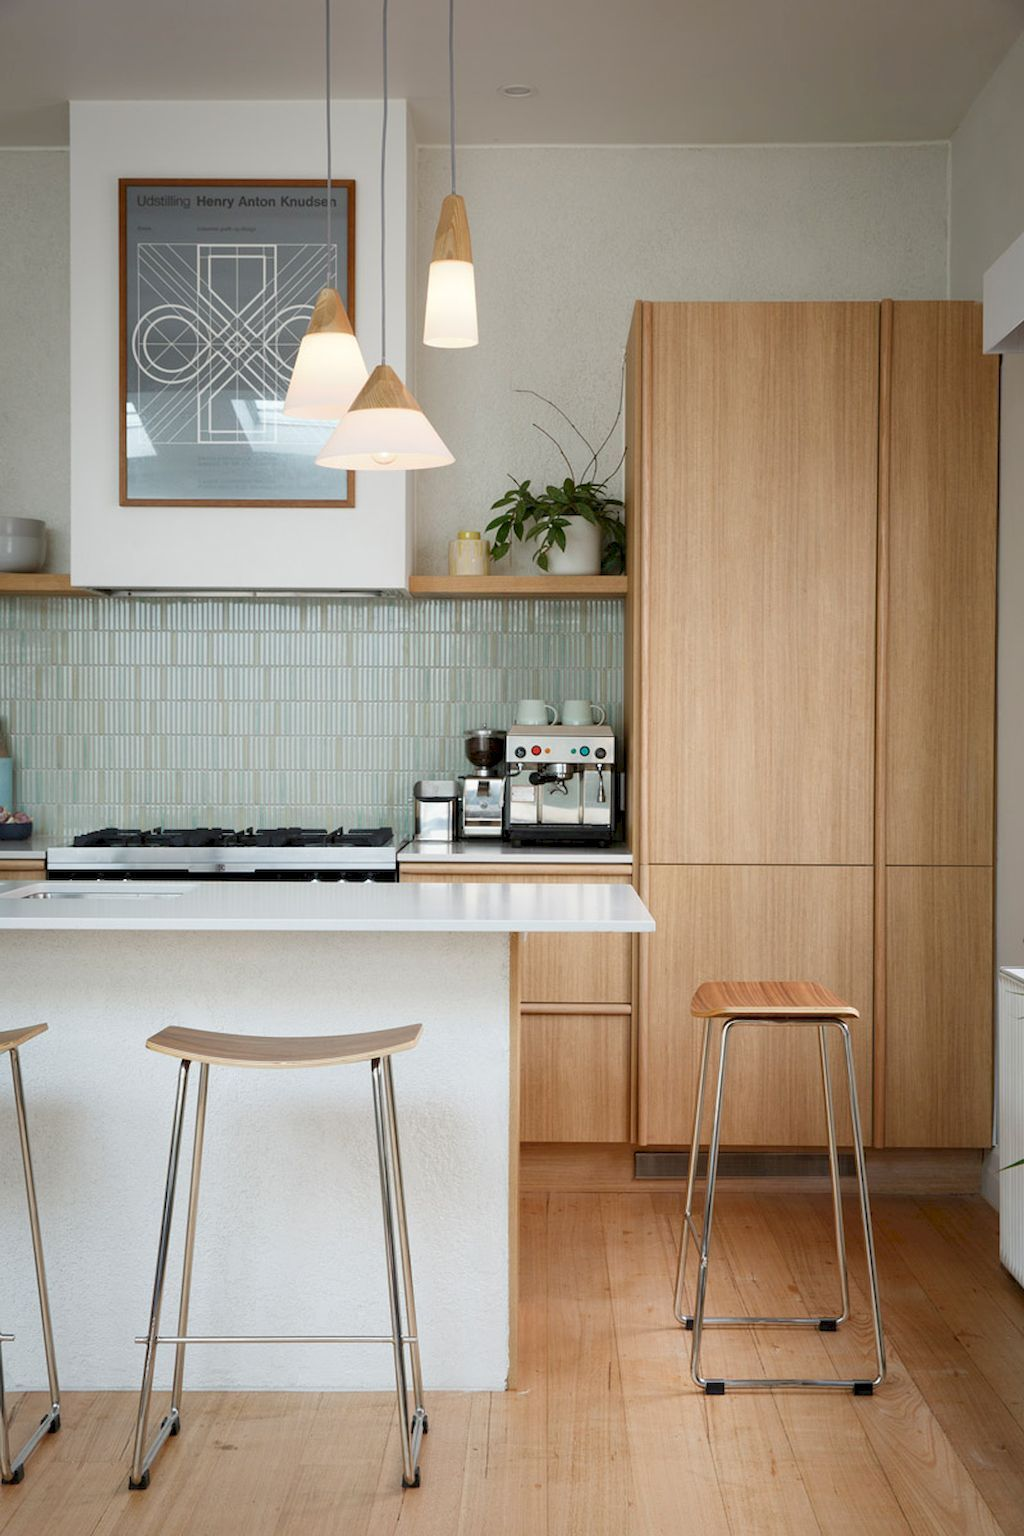 Modern Mid Century Kitchen Design & Decor Ideas 25  Kitchen Captivating Timber Kitchen Designs Decorating Inspiration